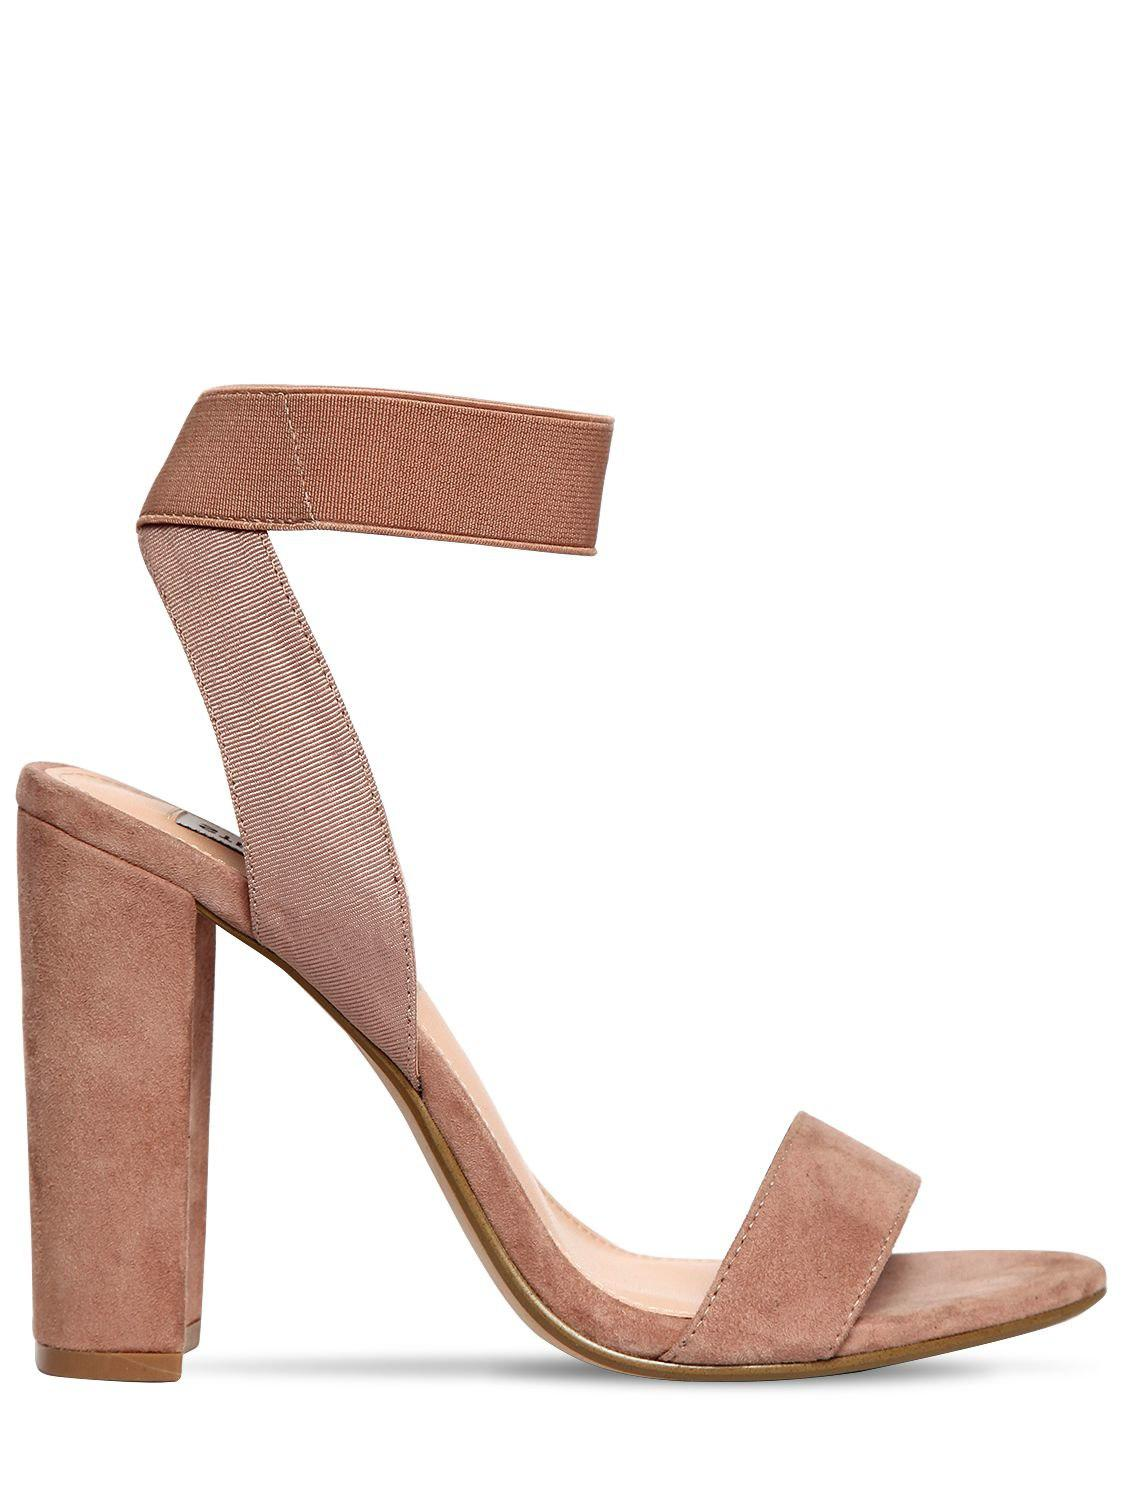 994a1b3ad26 Lyst - Steve Madden 100mm Celebrate Elastic   Suede Sandals in Natural